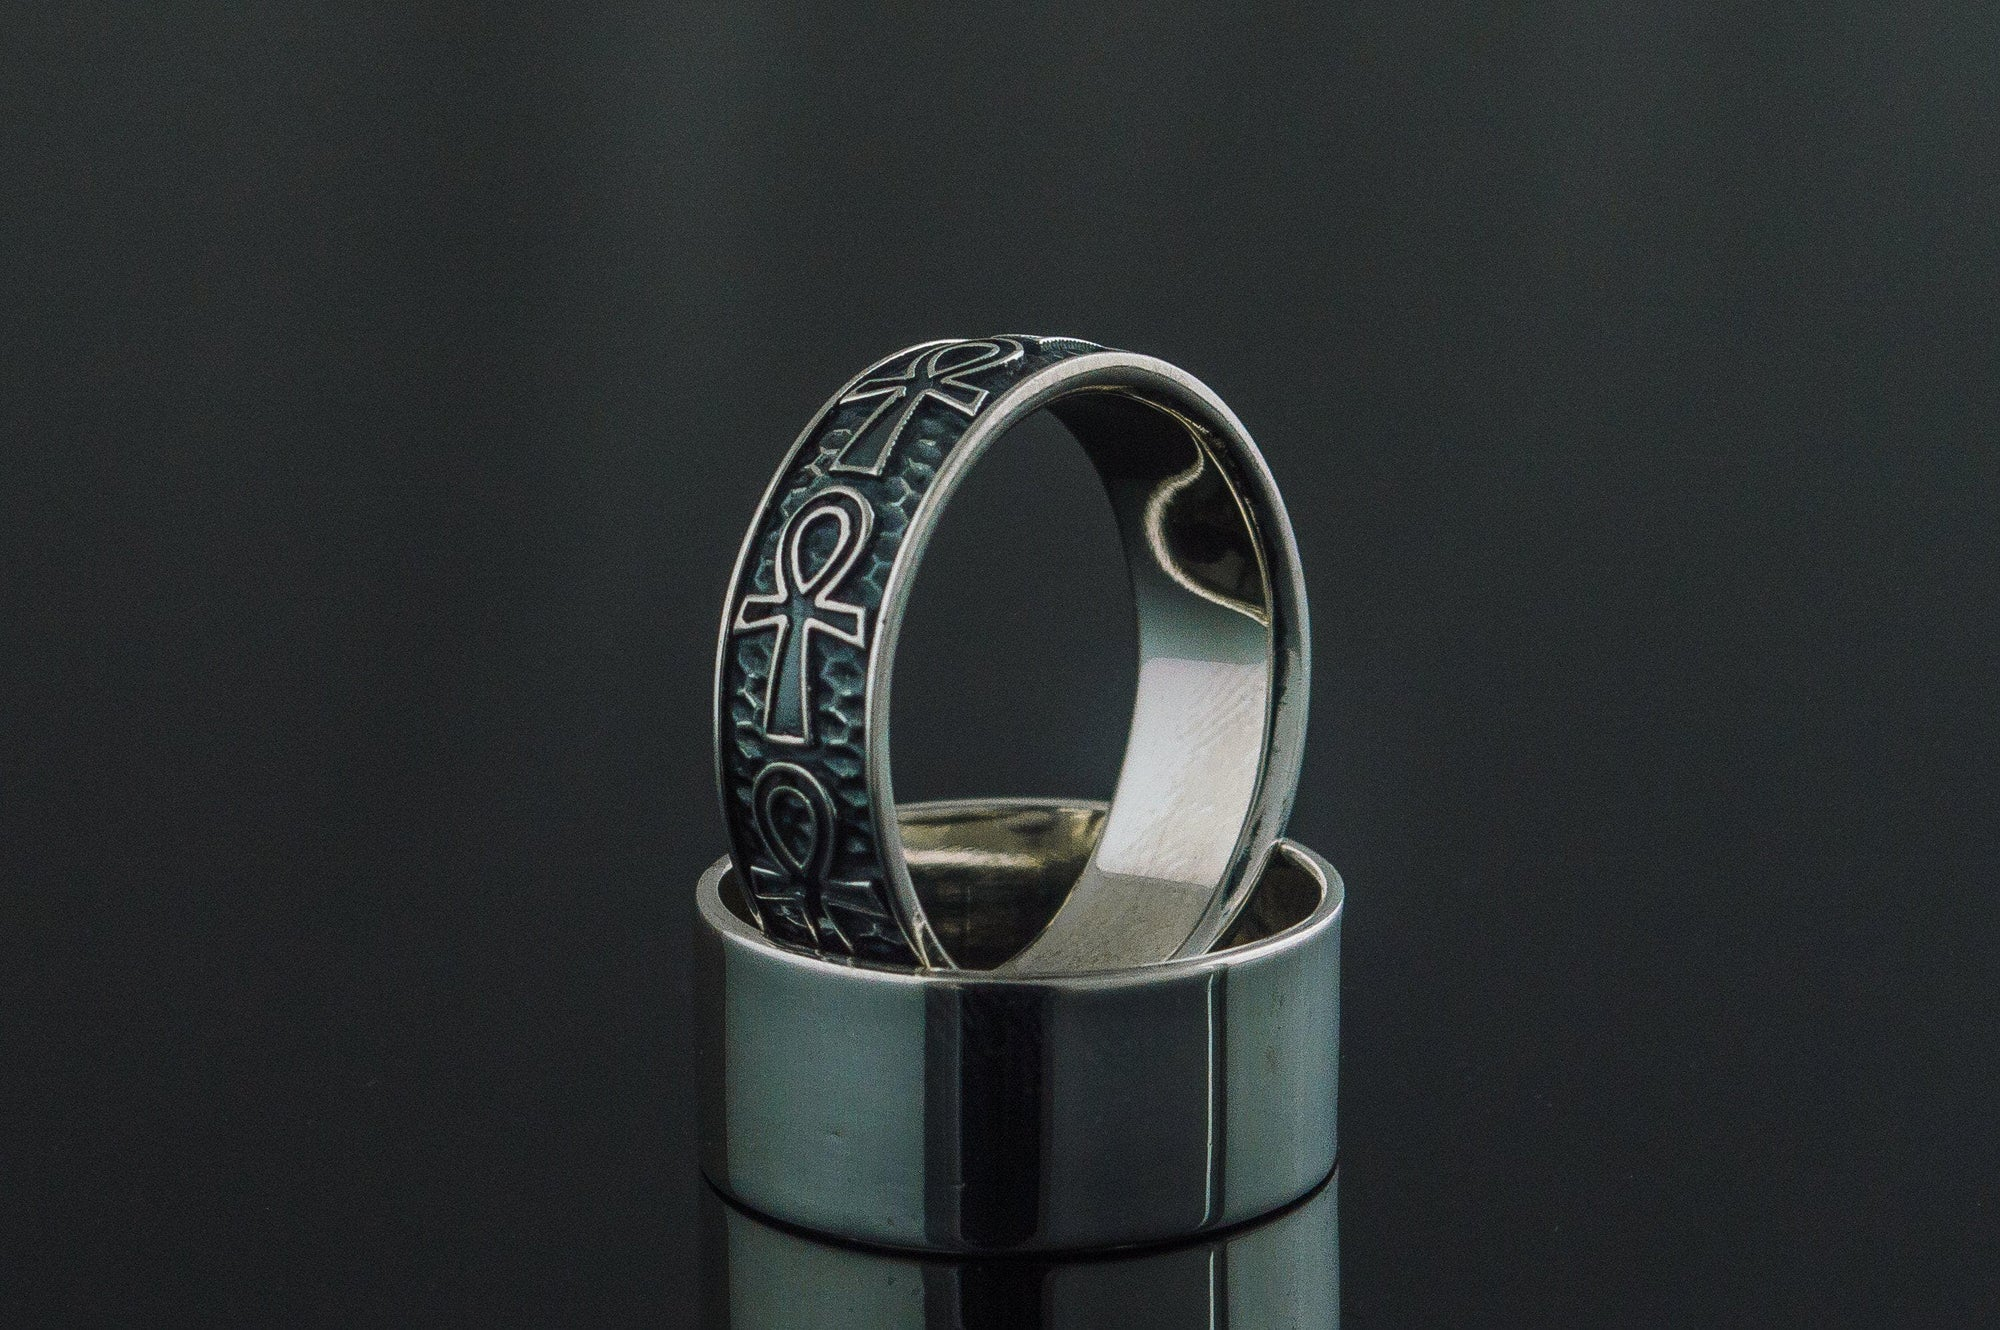 Rings Ancient Egypt Sterling Silver Unique Ankh Ring Ancient Treasures Ancientreasures Viking Odin Thor Mjolnir Celtic Ancient Egypt Norse Norse Mythology